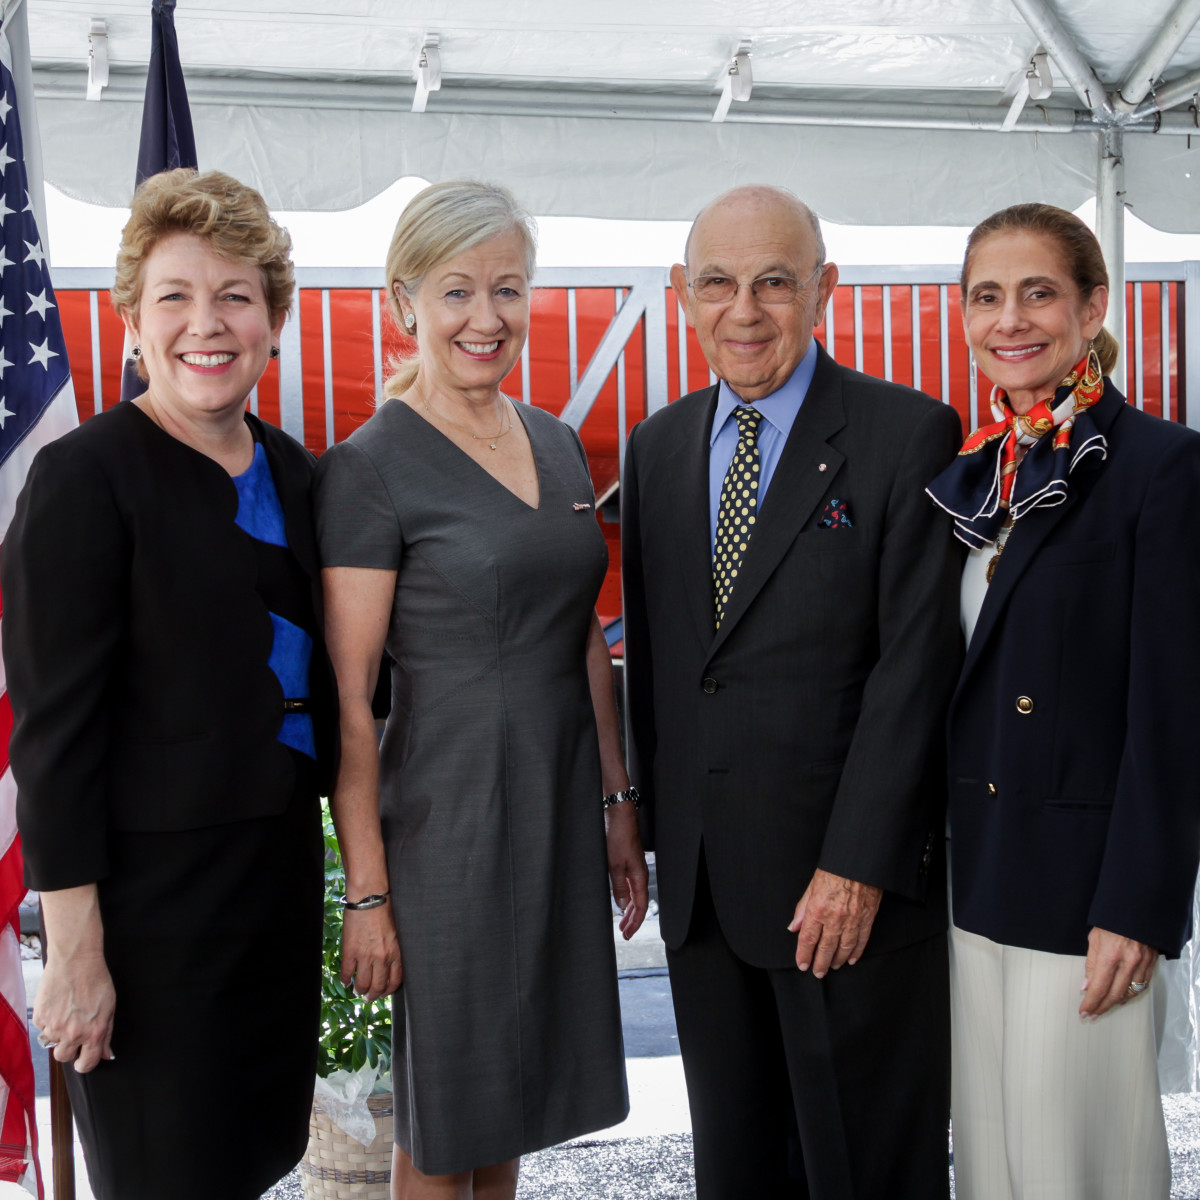 Holocaust Museum Houston rededication HMH Executive Director Kelly Zúñiga, Consul for the Kingdom of Denmark Anna Thomsen Holliday, Former Ambassador for the Kingdom of Denmark Ole Philipson, HMH Board Chair Gail Klein.